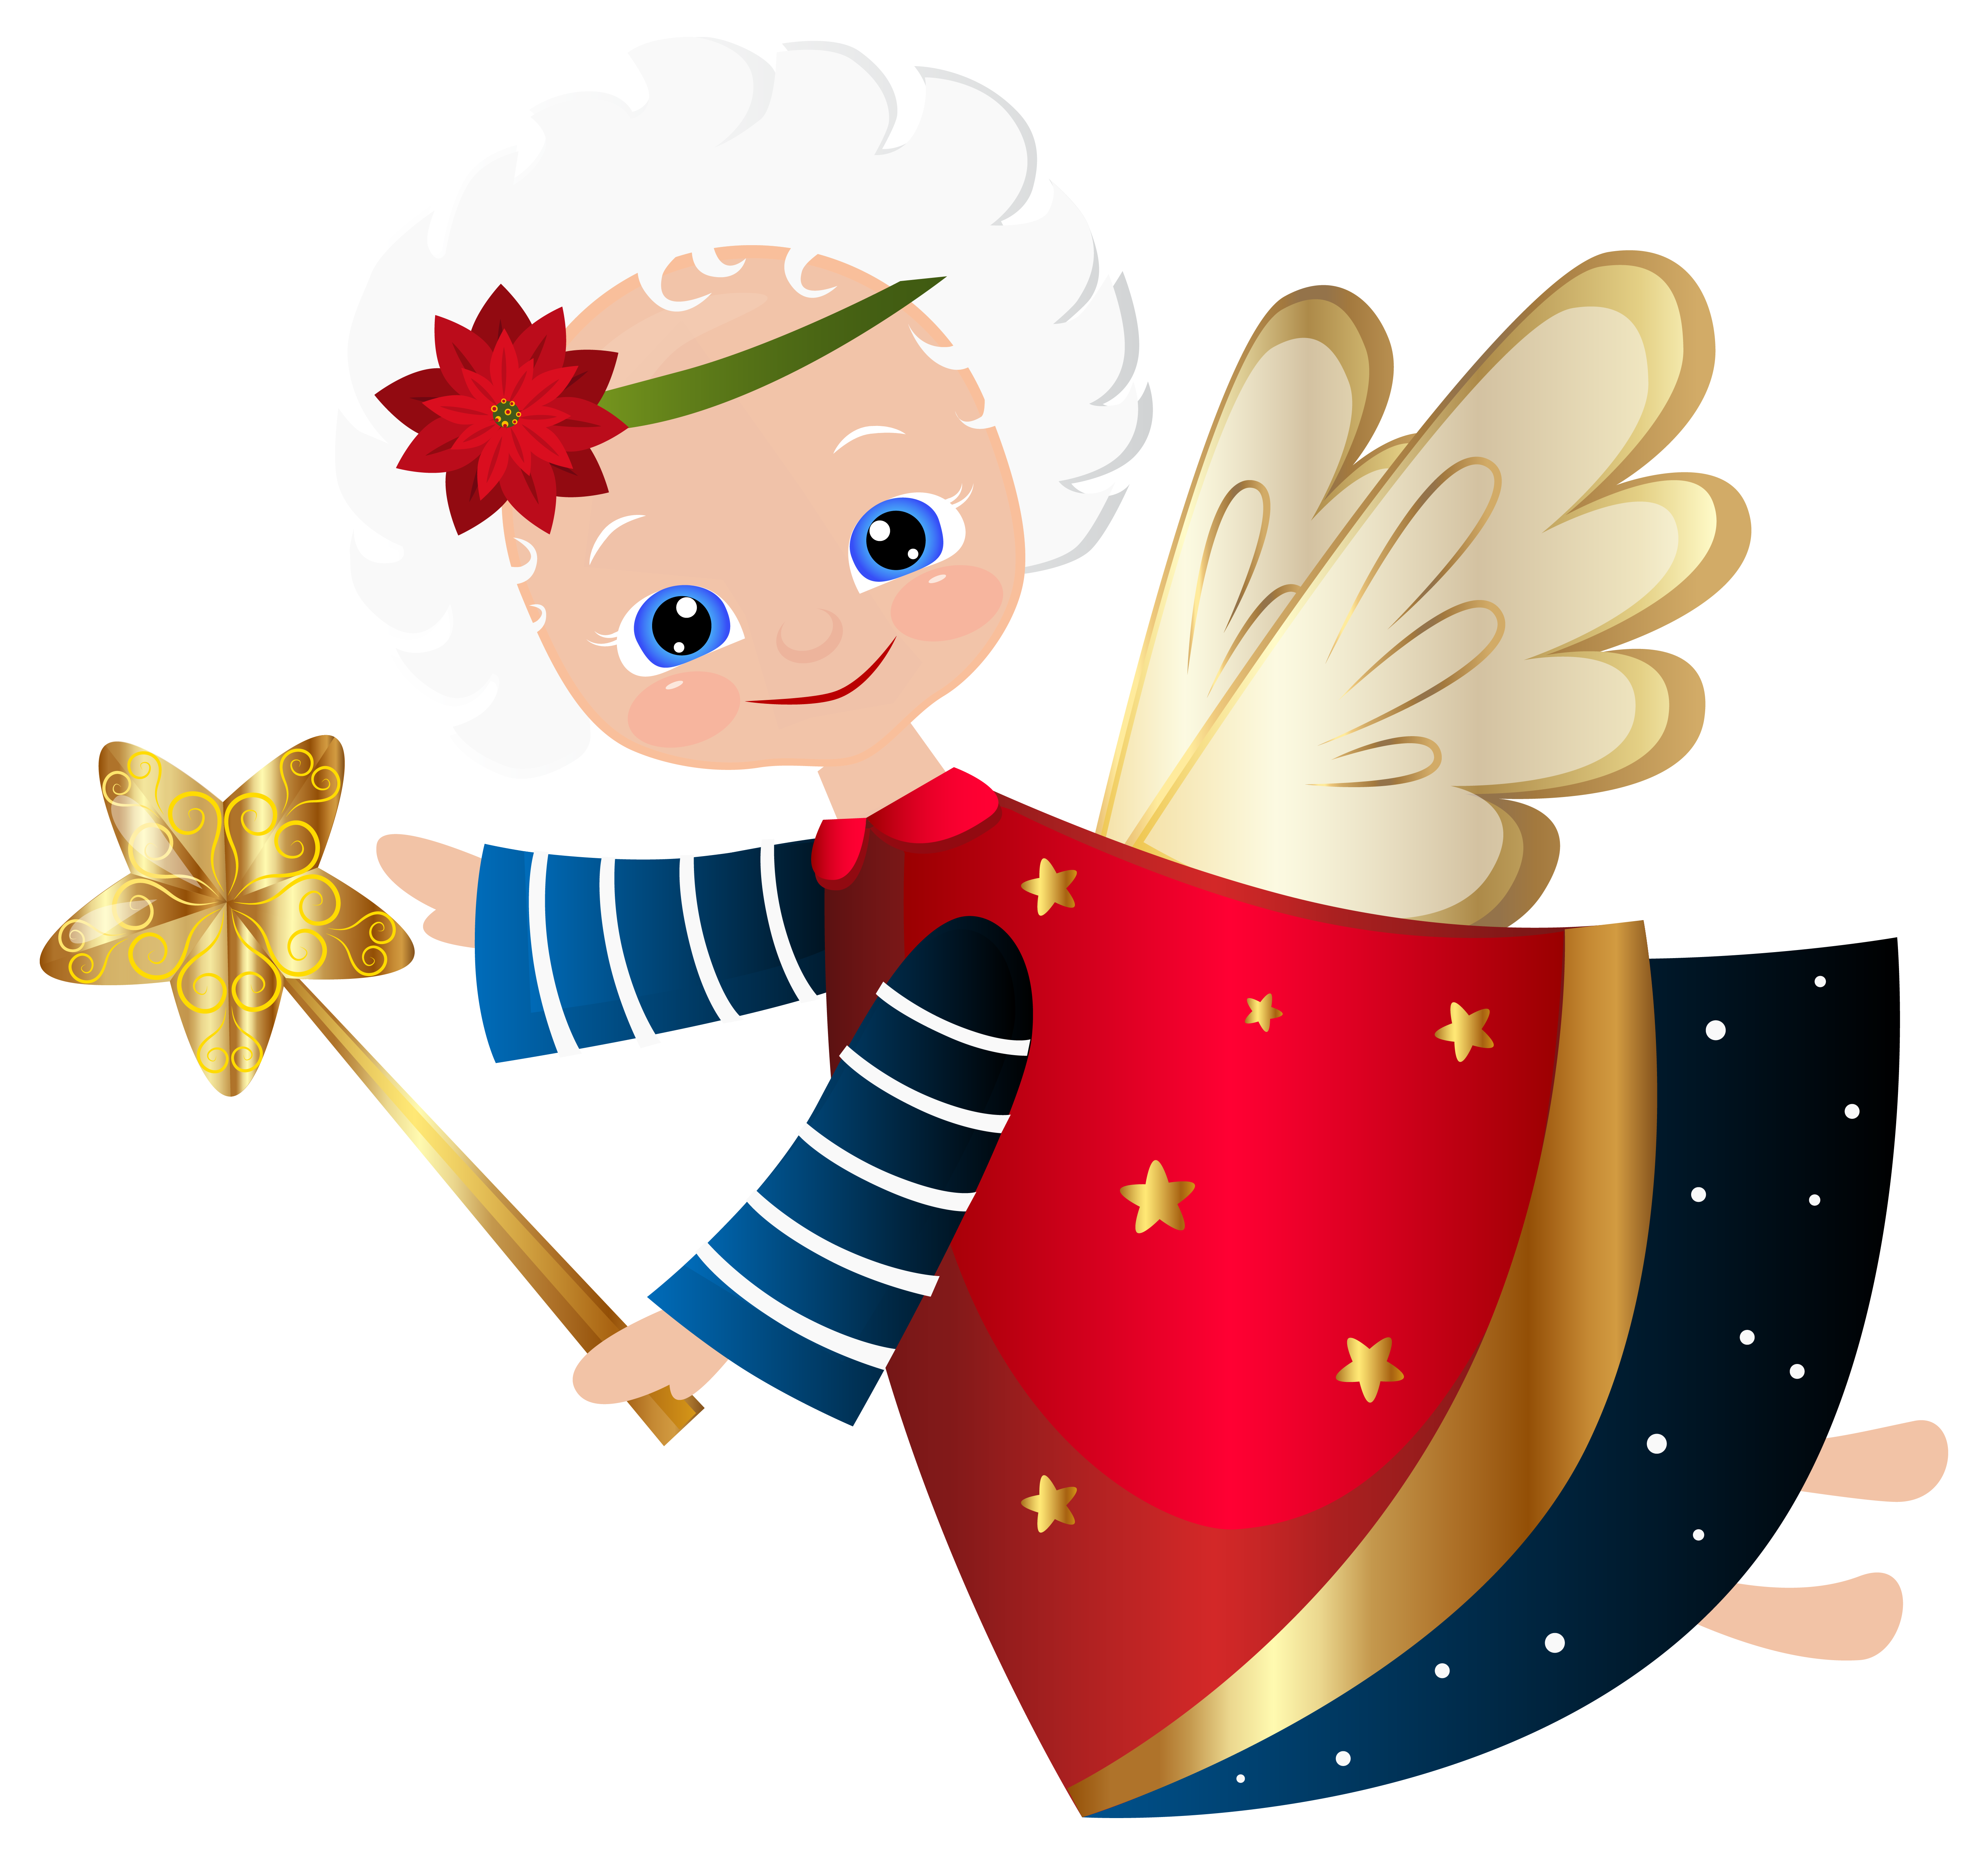 Christmas angel clipart images clip free download 28+ Collection of Cute Christmas Angel Clipart | High quality, free ... clip free download